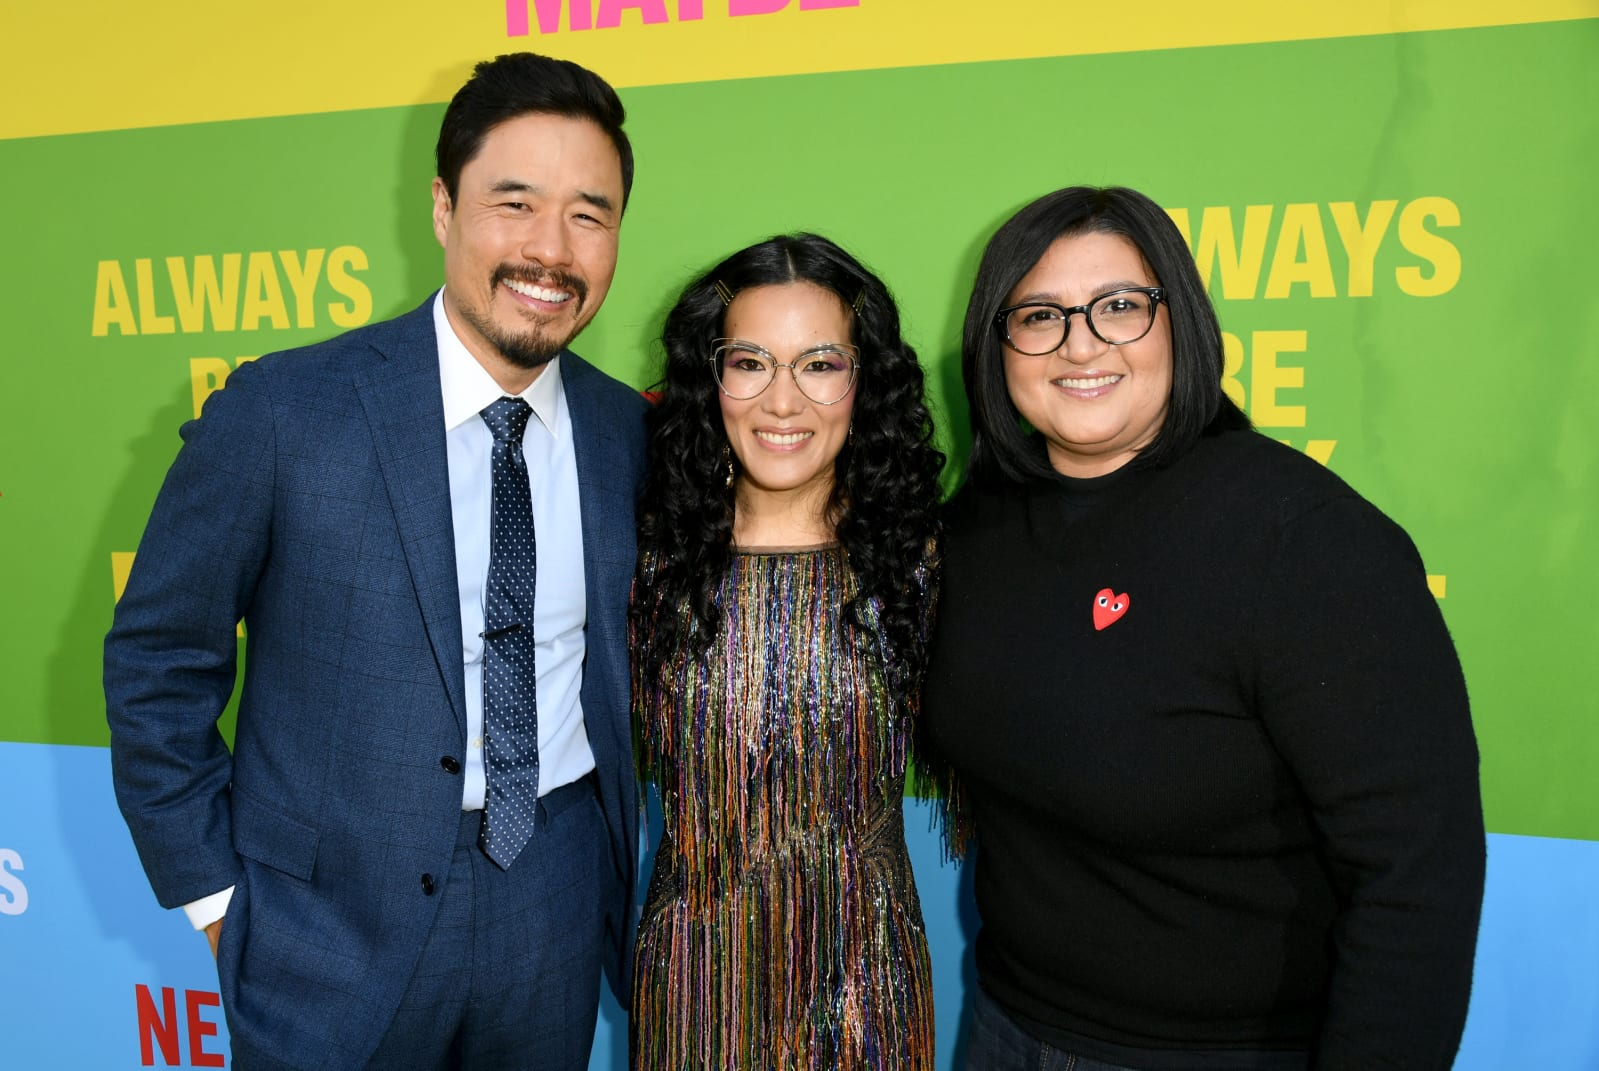 Netflix releases 'Always Be My Maybe' director's commentary podcast